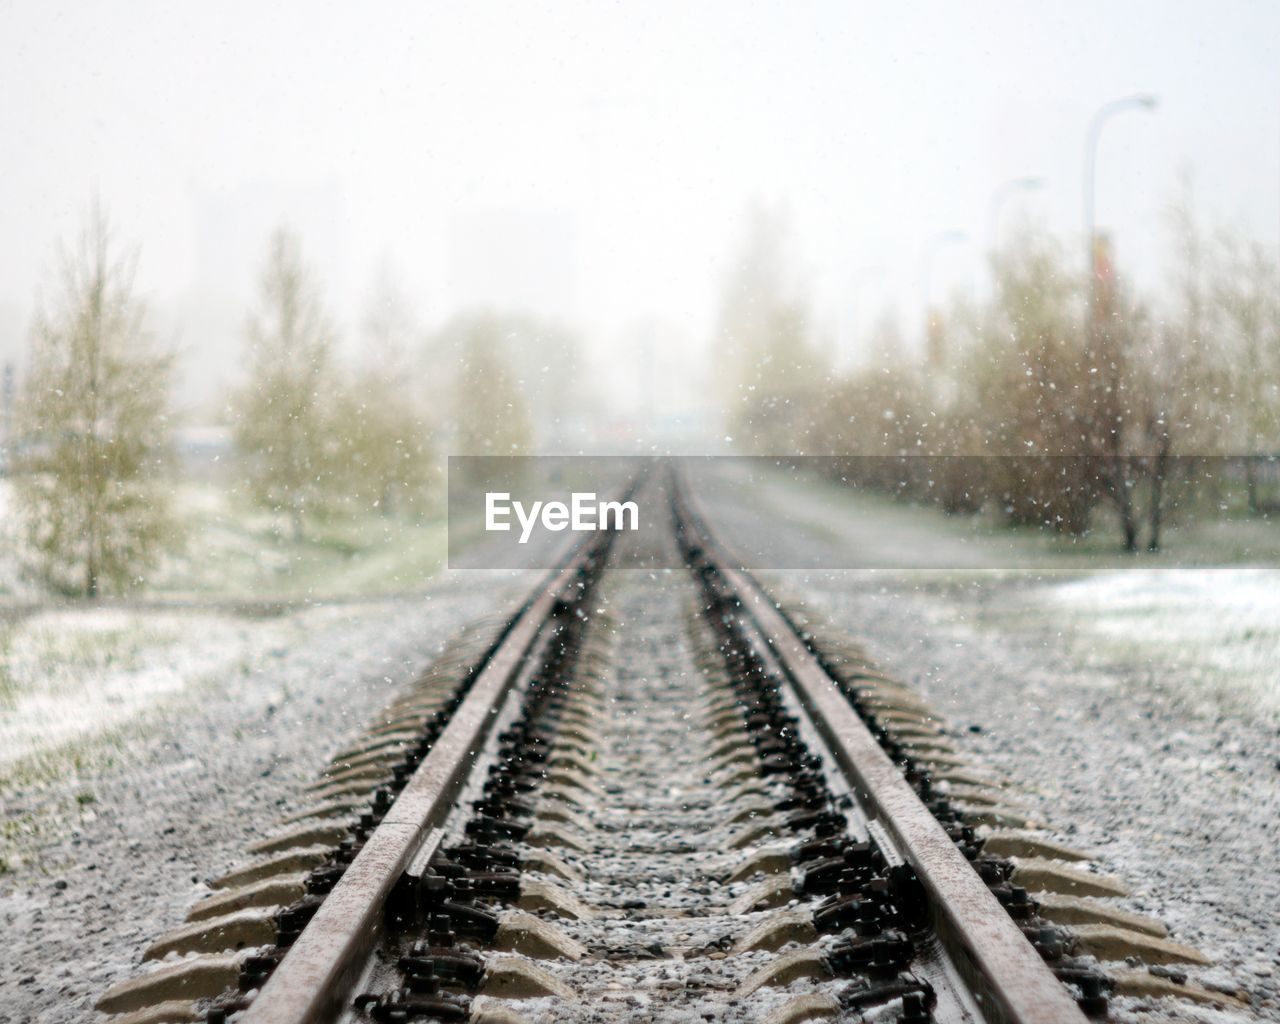 Waiting for the train going into summer Snowing Surface Level Long Mode Of Transportation Outdoors Focus On Foreground Snow Day Cold Temperature The Way Forward Plant Tree Direction No People Diminishing Perspective Track Transportation Railroad Track Rail Transportation Snowflakes Snowfall My Best Photo